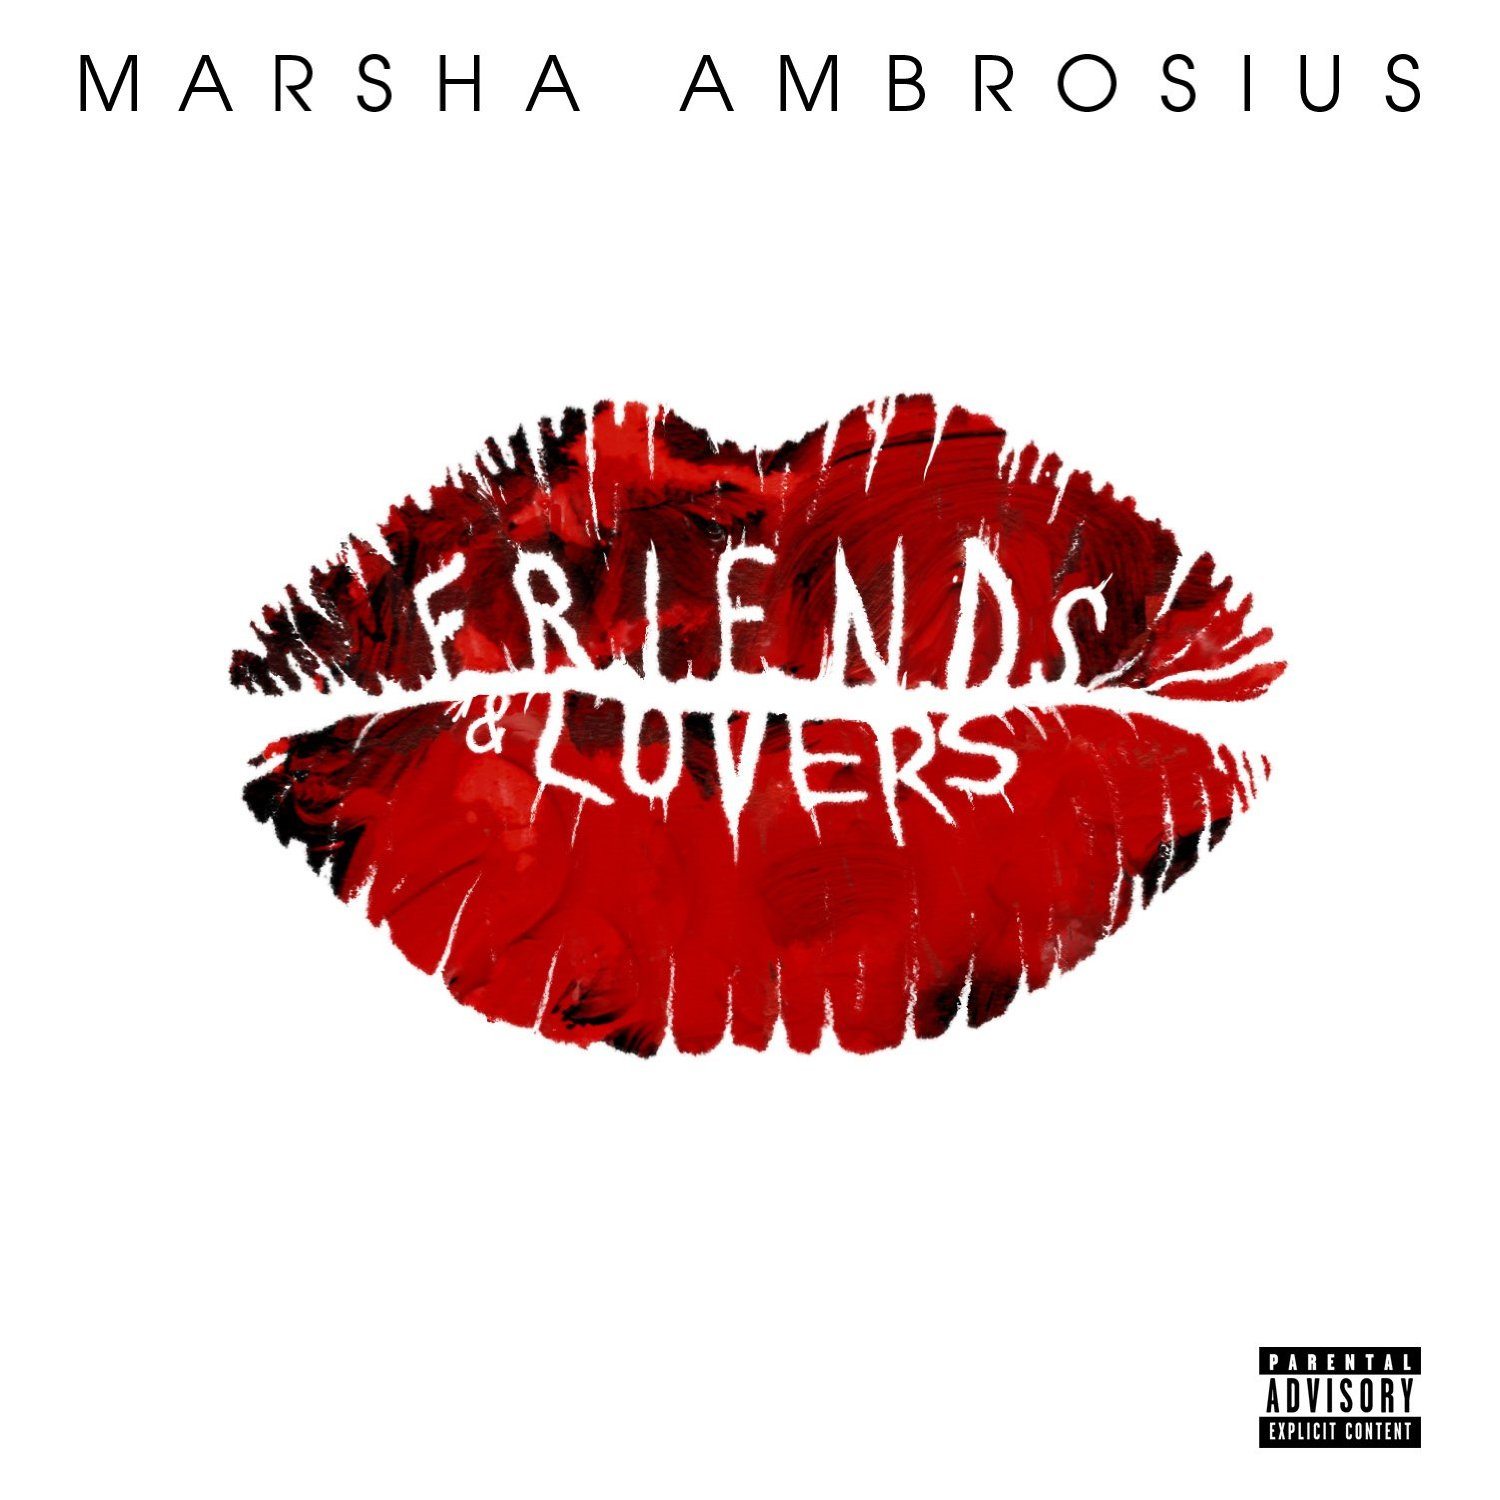 Takeaways from Marsha Ambrosius' 'Friends & Lovers'